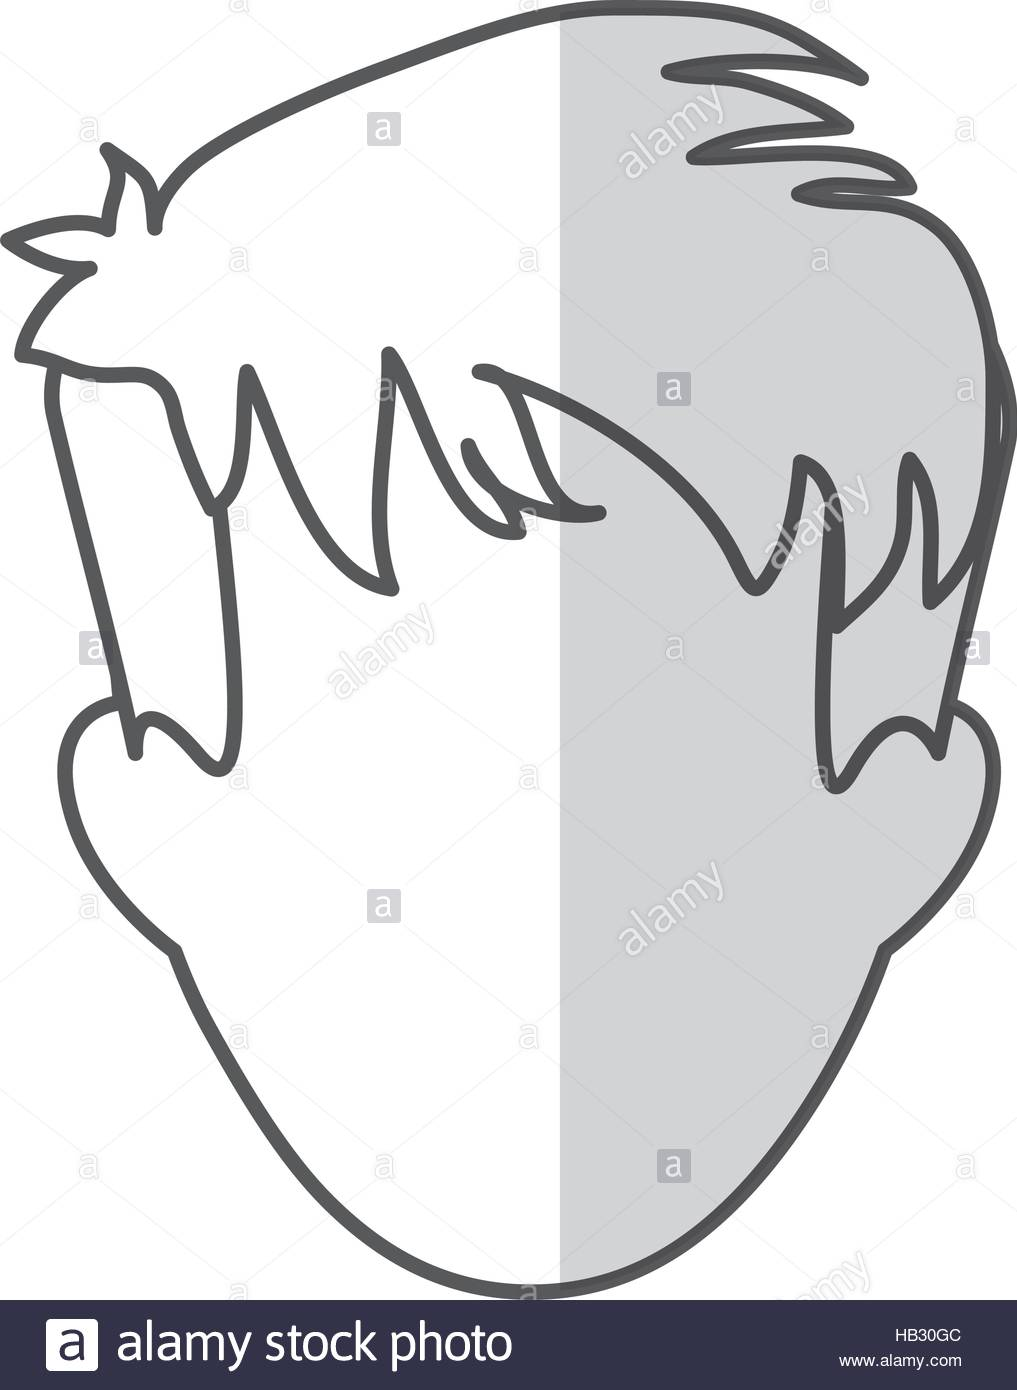 Man With Shaggy Hair Icon Image Vector Illustration Design Stock.